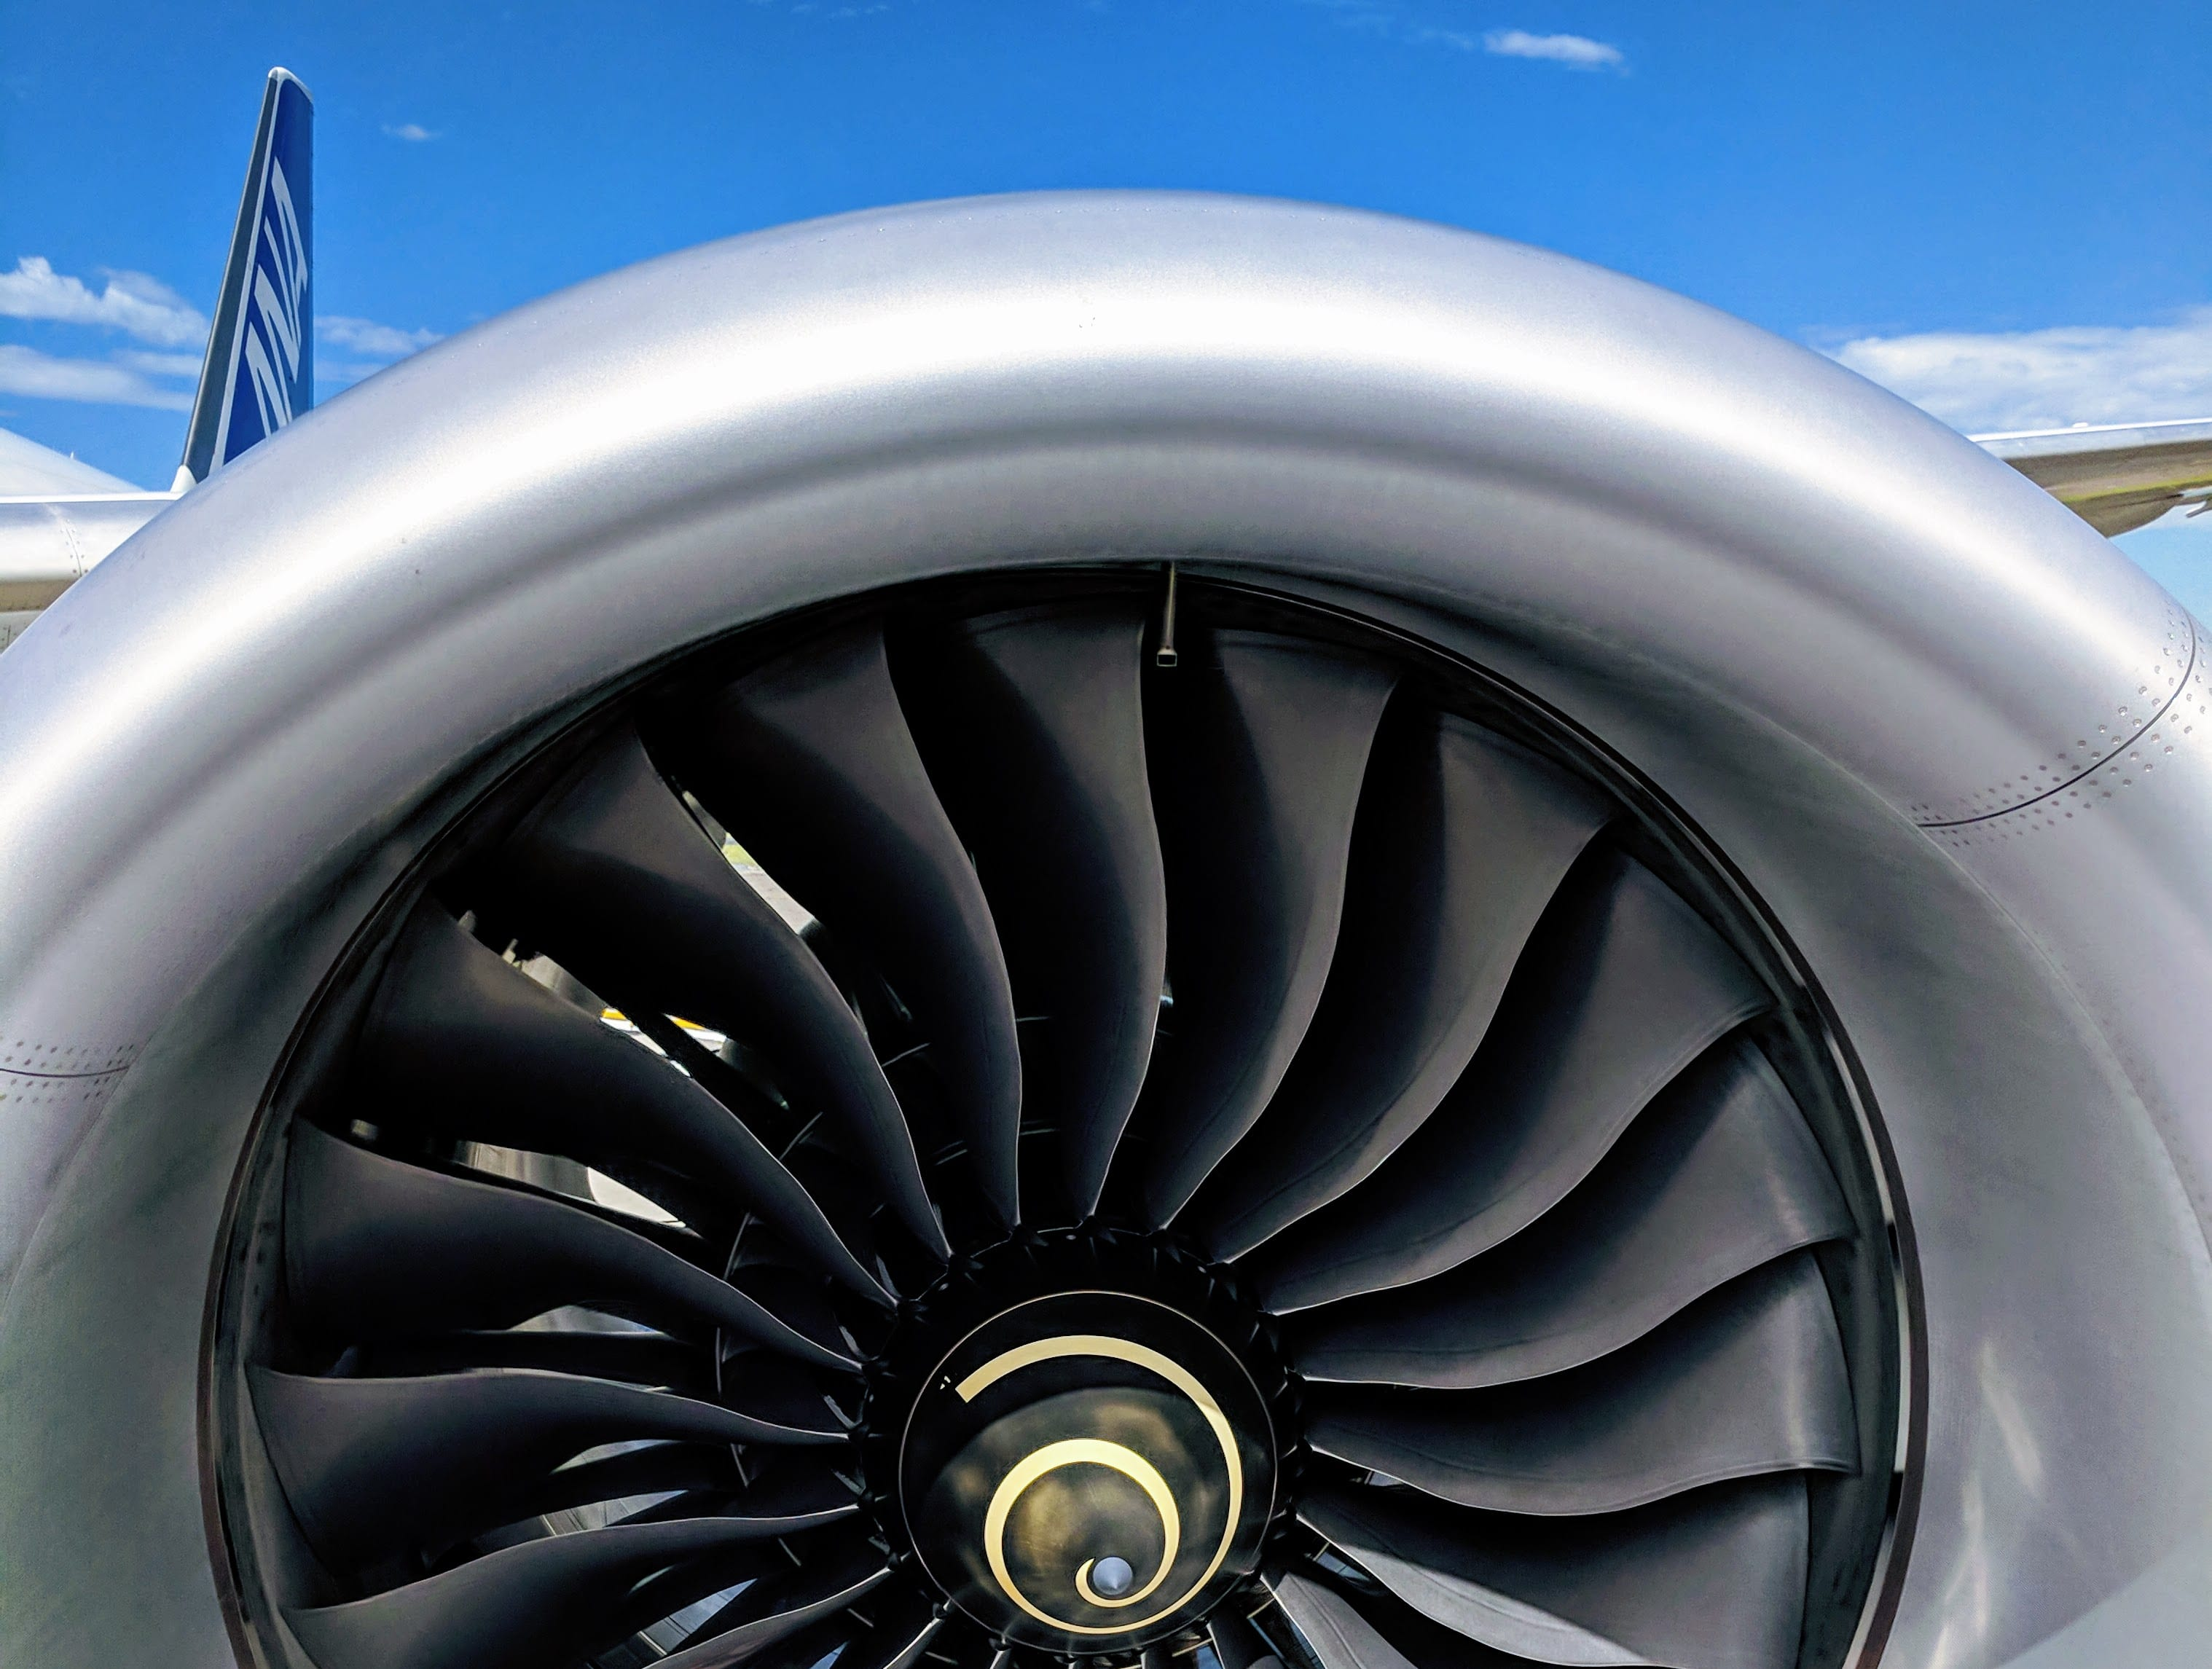 Airlines Face New Problems With Rolls Royce 787 Dreamliner Engines... - God Save The Points